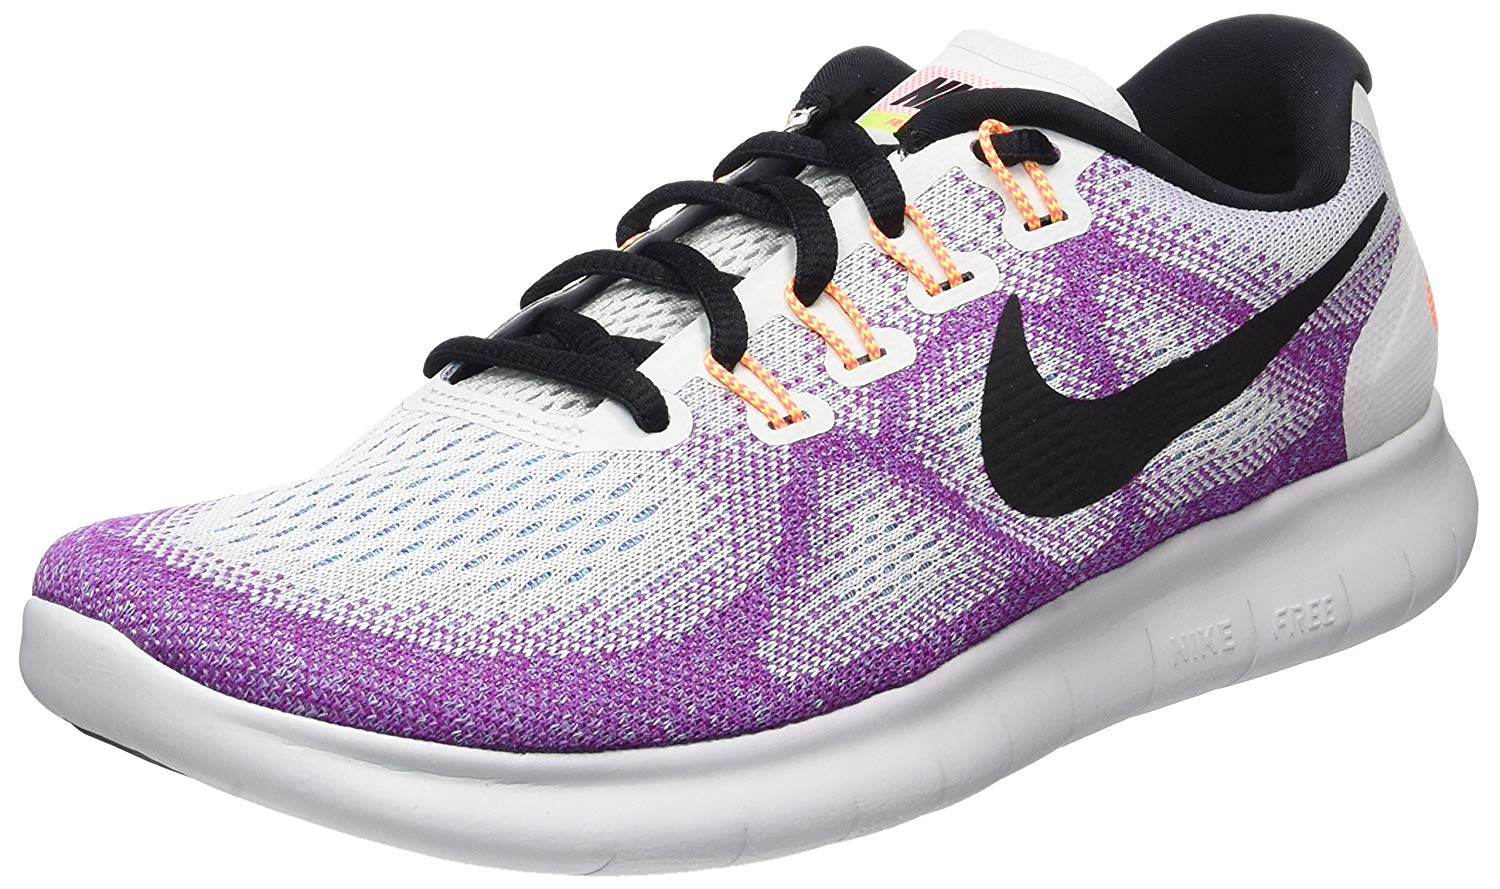 d0adb1e92ce0c Details about Nike Womens Free Rn 2017 Low Top Lace Up Running Sneaker